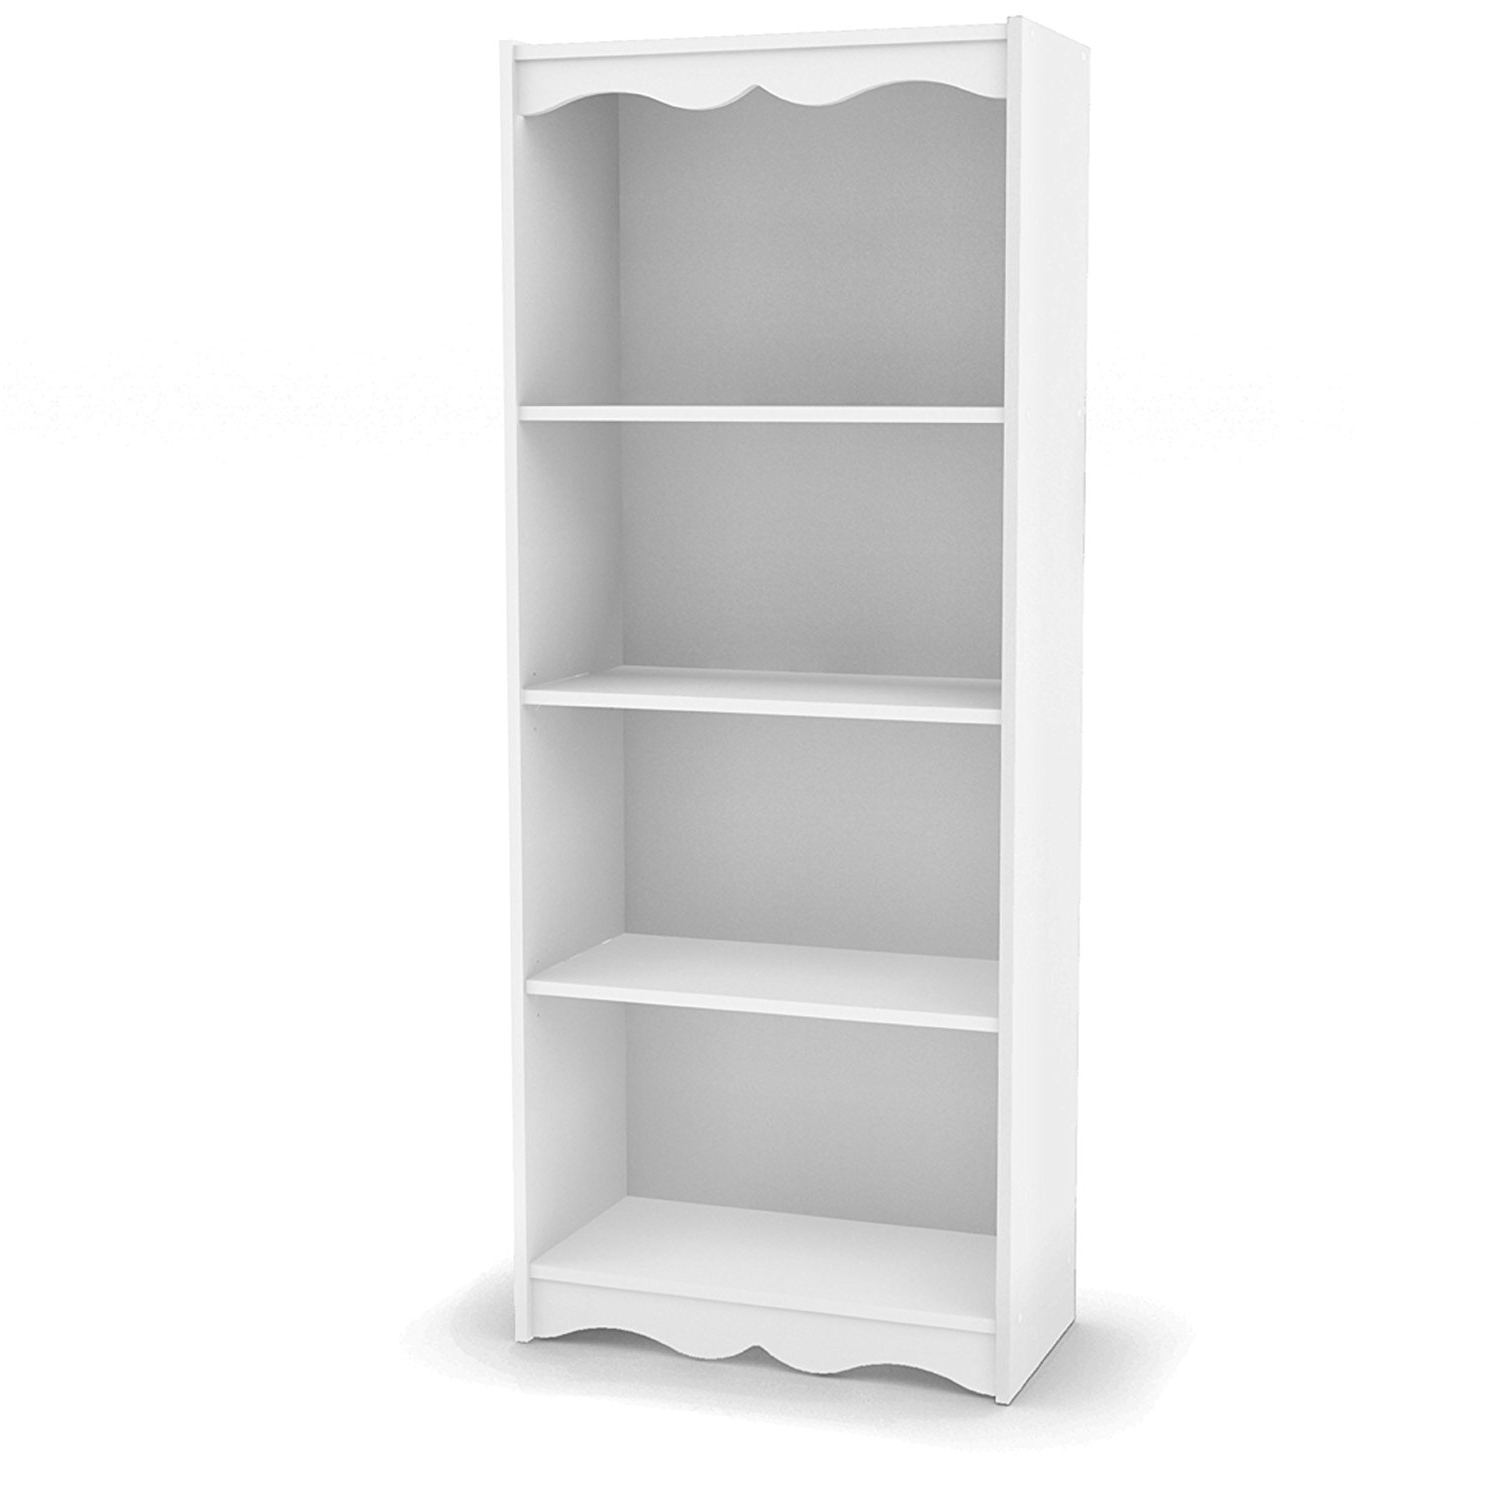 Best And Newest Tall Bookcases In Amazon: Sonax Hawthorn 48 Inch Tall Bookcase, Frost White (View 13 of 15)